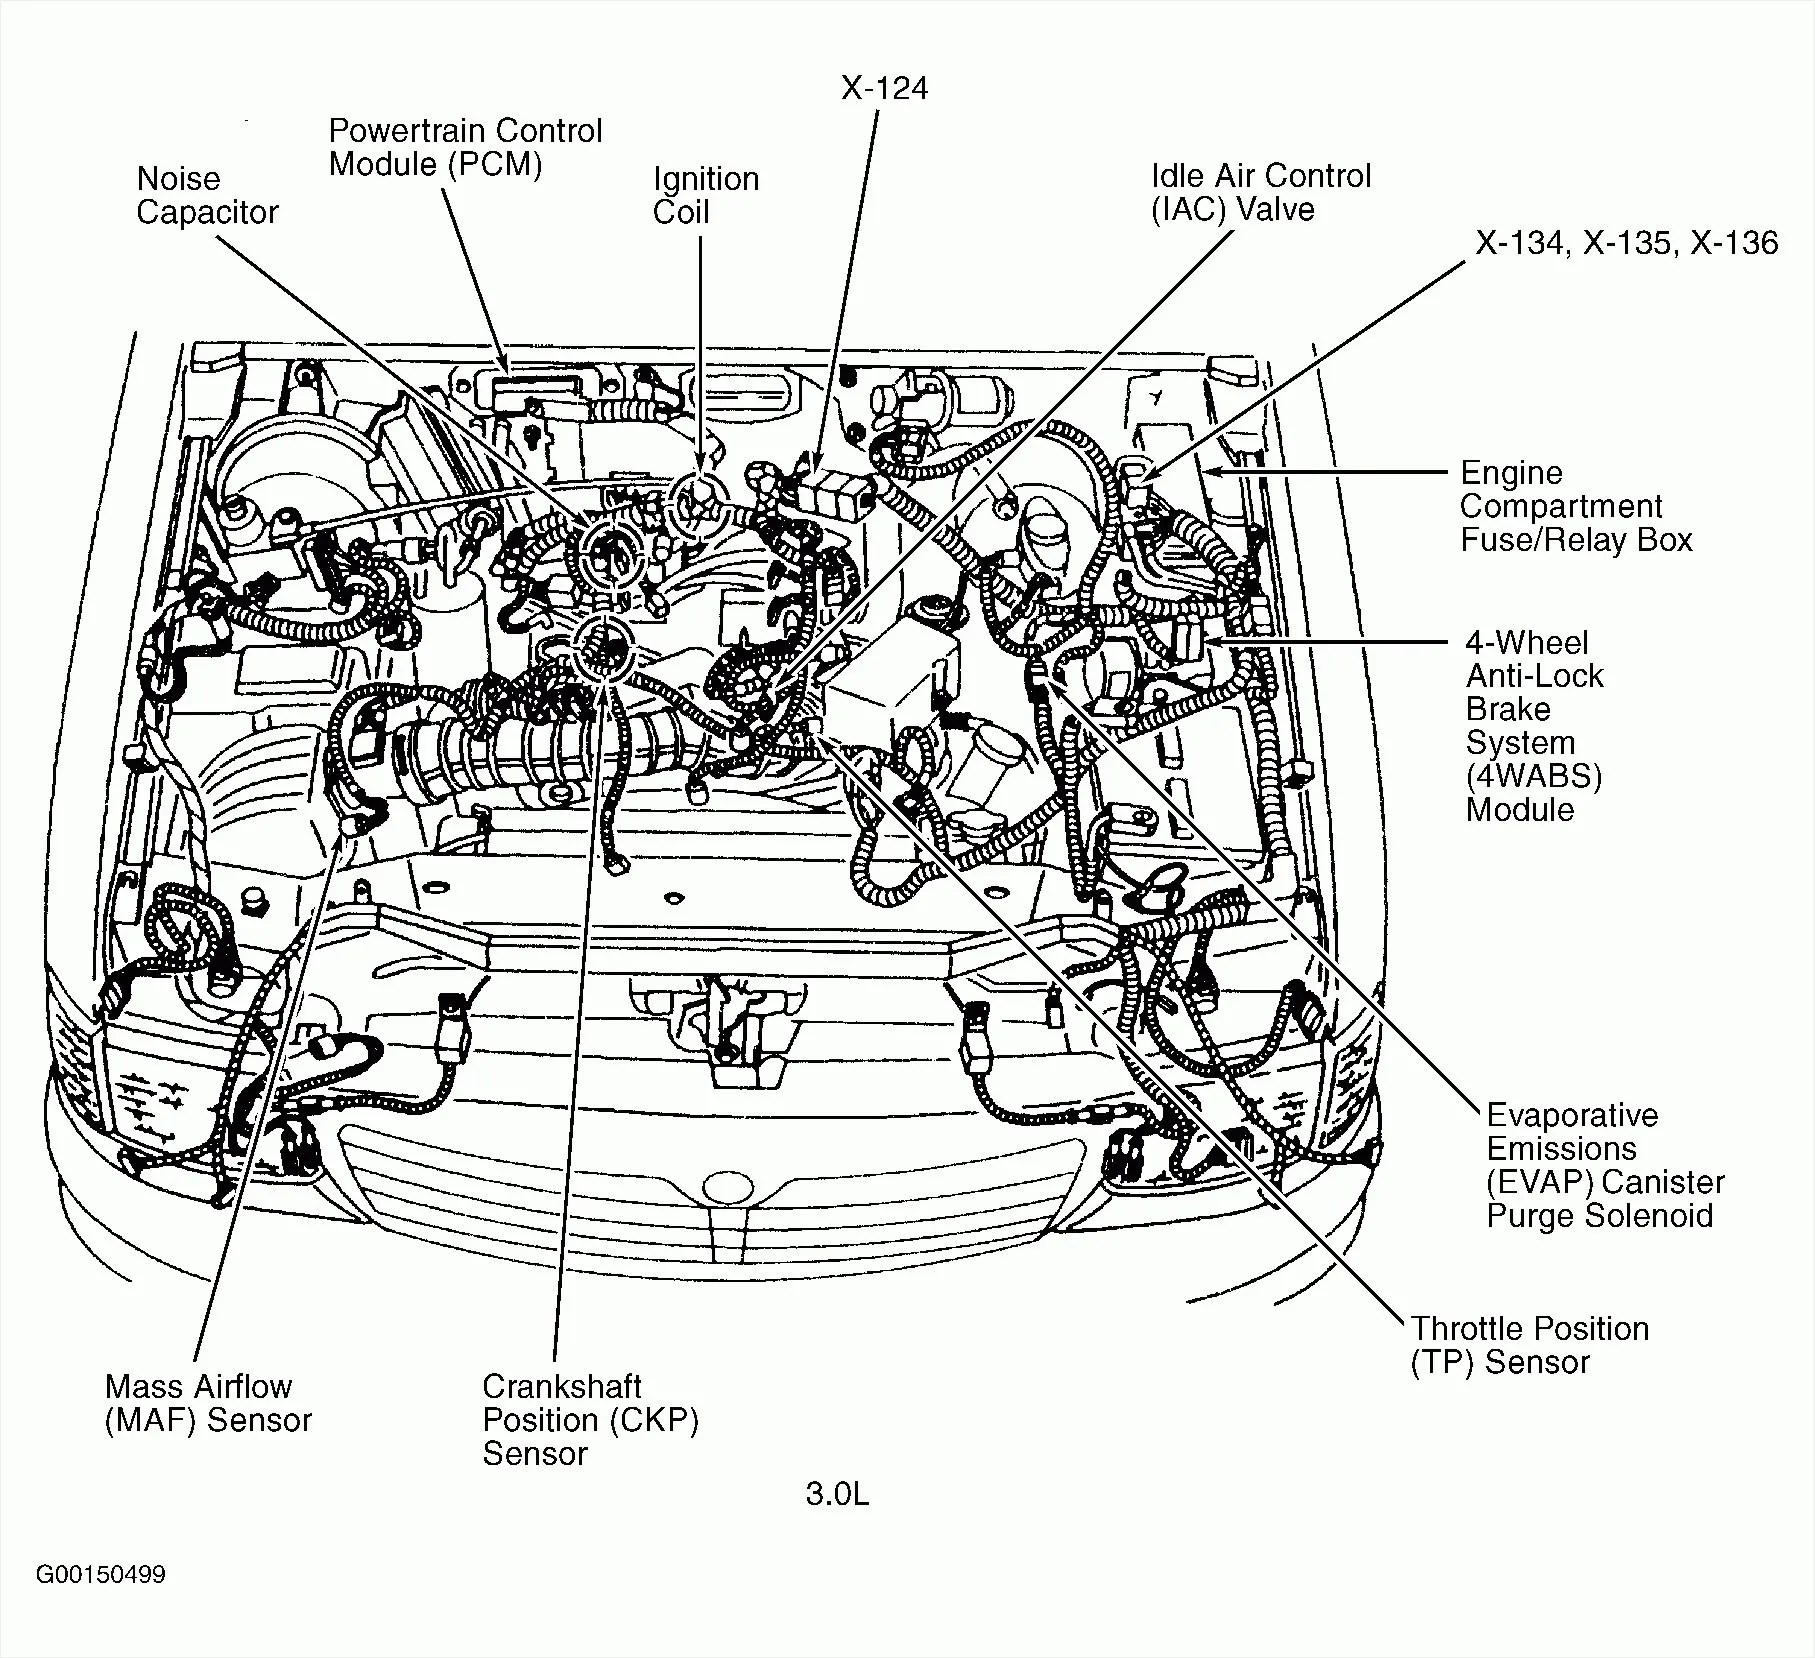 hight resolution of 2000 honda accord 2 3 vtec engine diagram on plymouth engine coolant 3 4l v6 engine